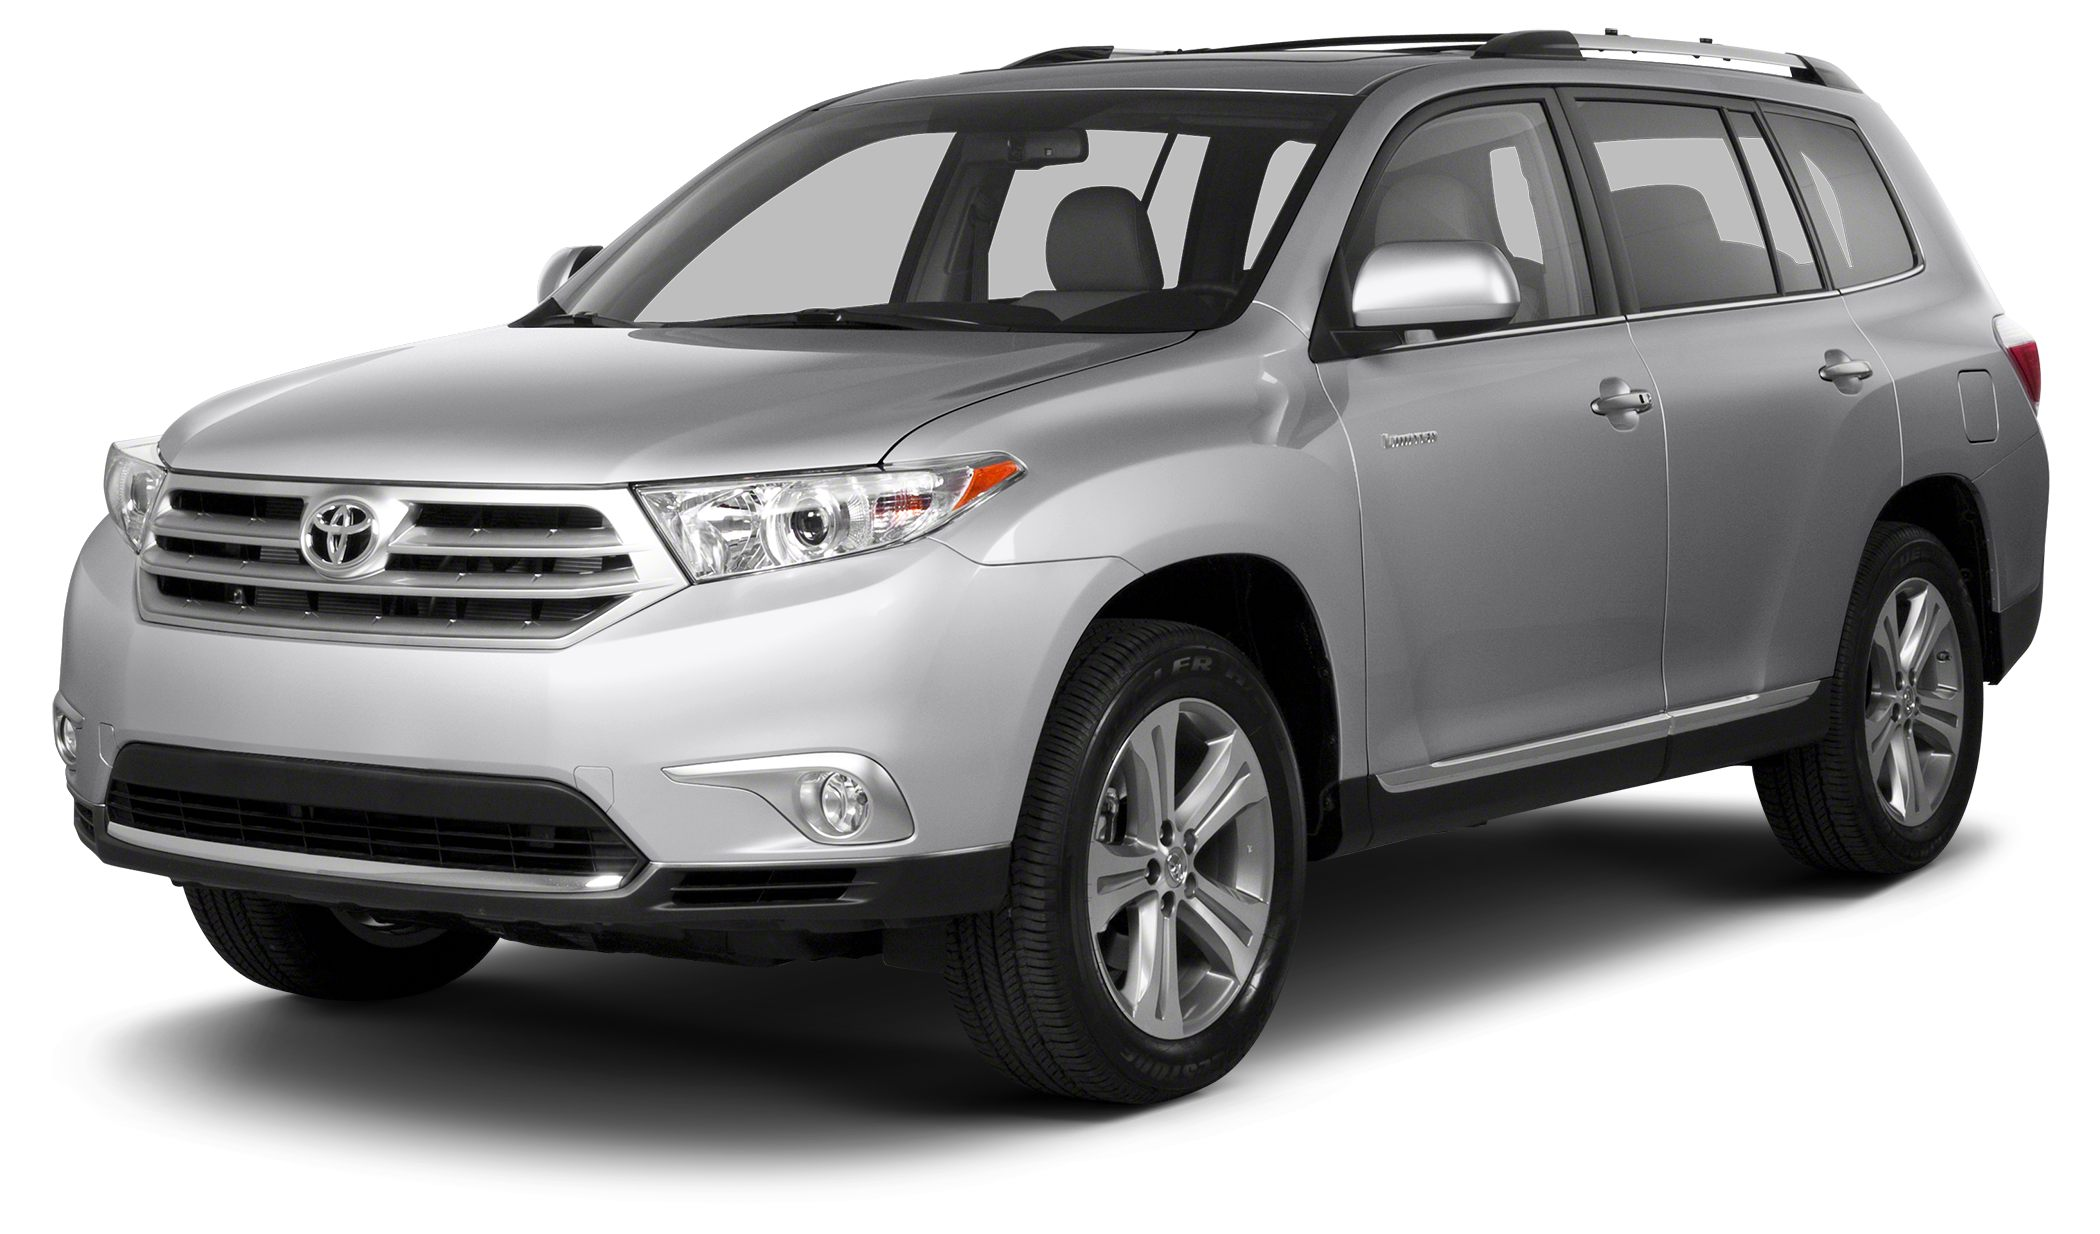 2013 Toyota Highlander LE Snag a score on this 2013 Toyota Highlander 4DR FWD I4 LE before someone